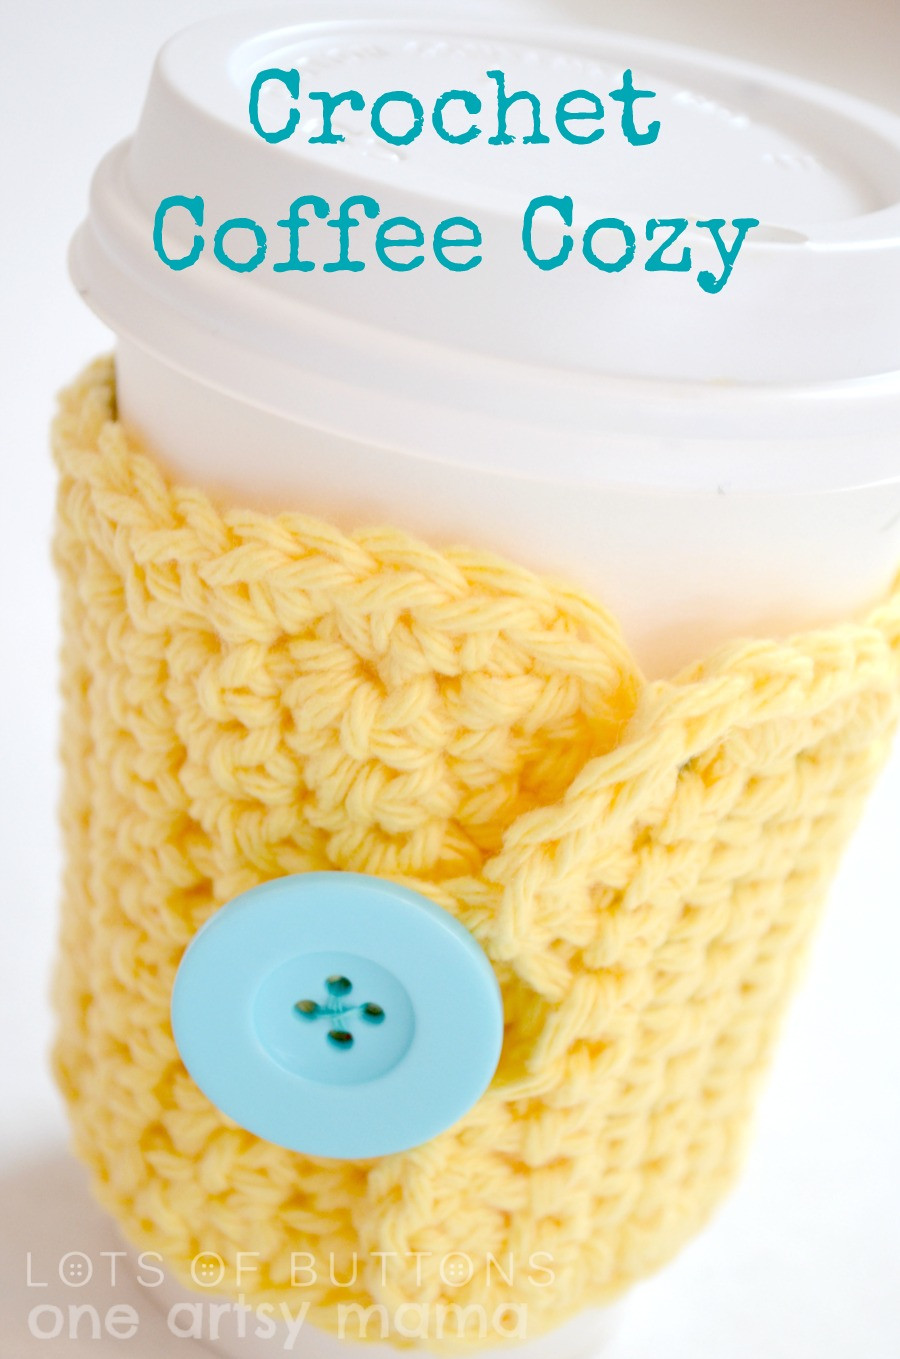 Crochet Coffee Cup Cozy Lovely Crochet Coffee Cozy Amy Latta Creations Of Crochet Coffee Cup Cozy Fresh 20 Cool Crochet Coffee Cozy Ideas & Tutorials Hative